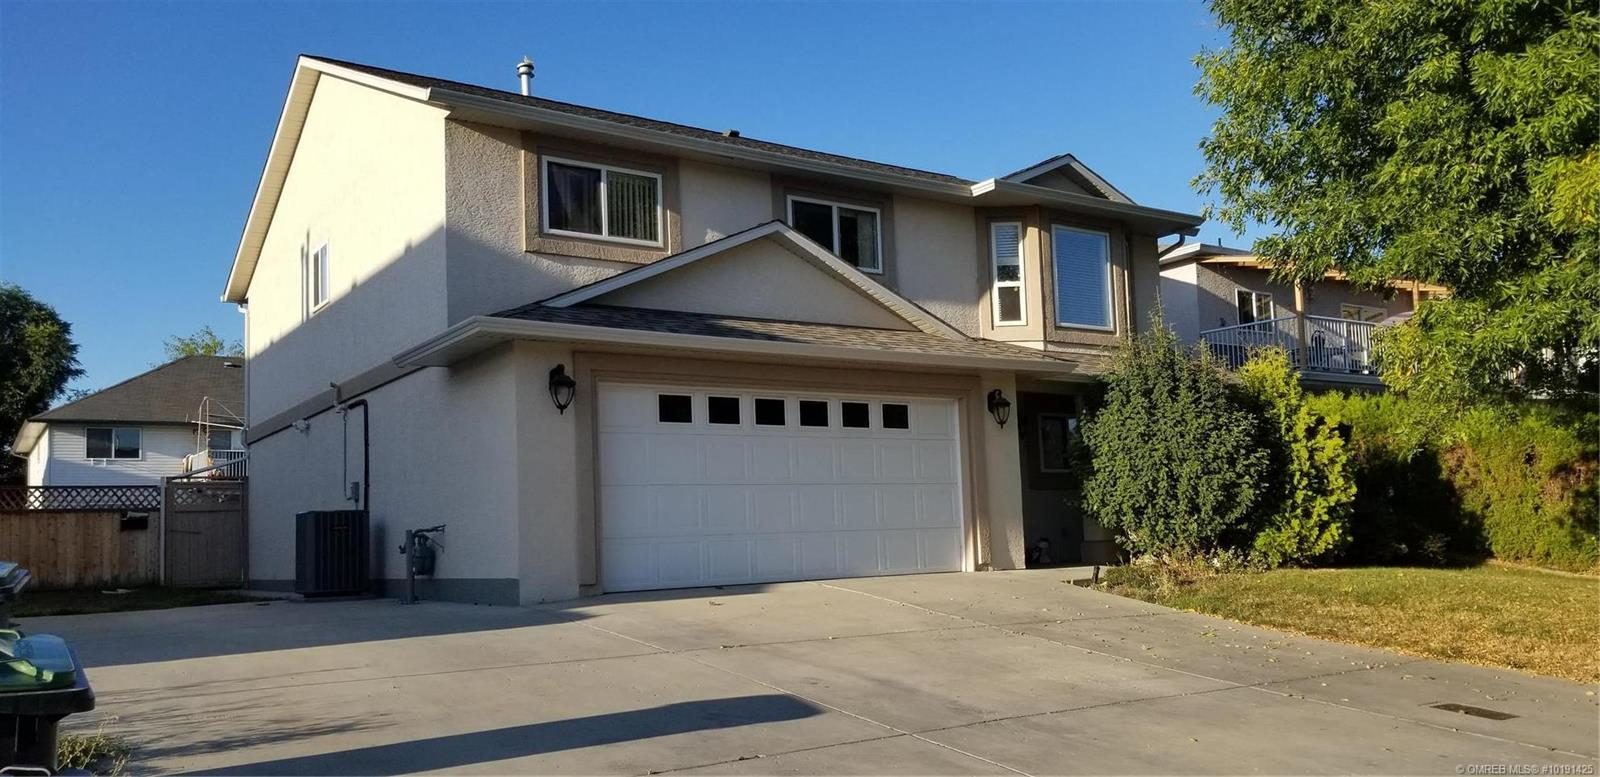 Removed: 420 Wigglesworth Crescent, Kelowna, BC - Removed on 2019-12-03 05:57:05